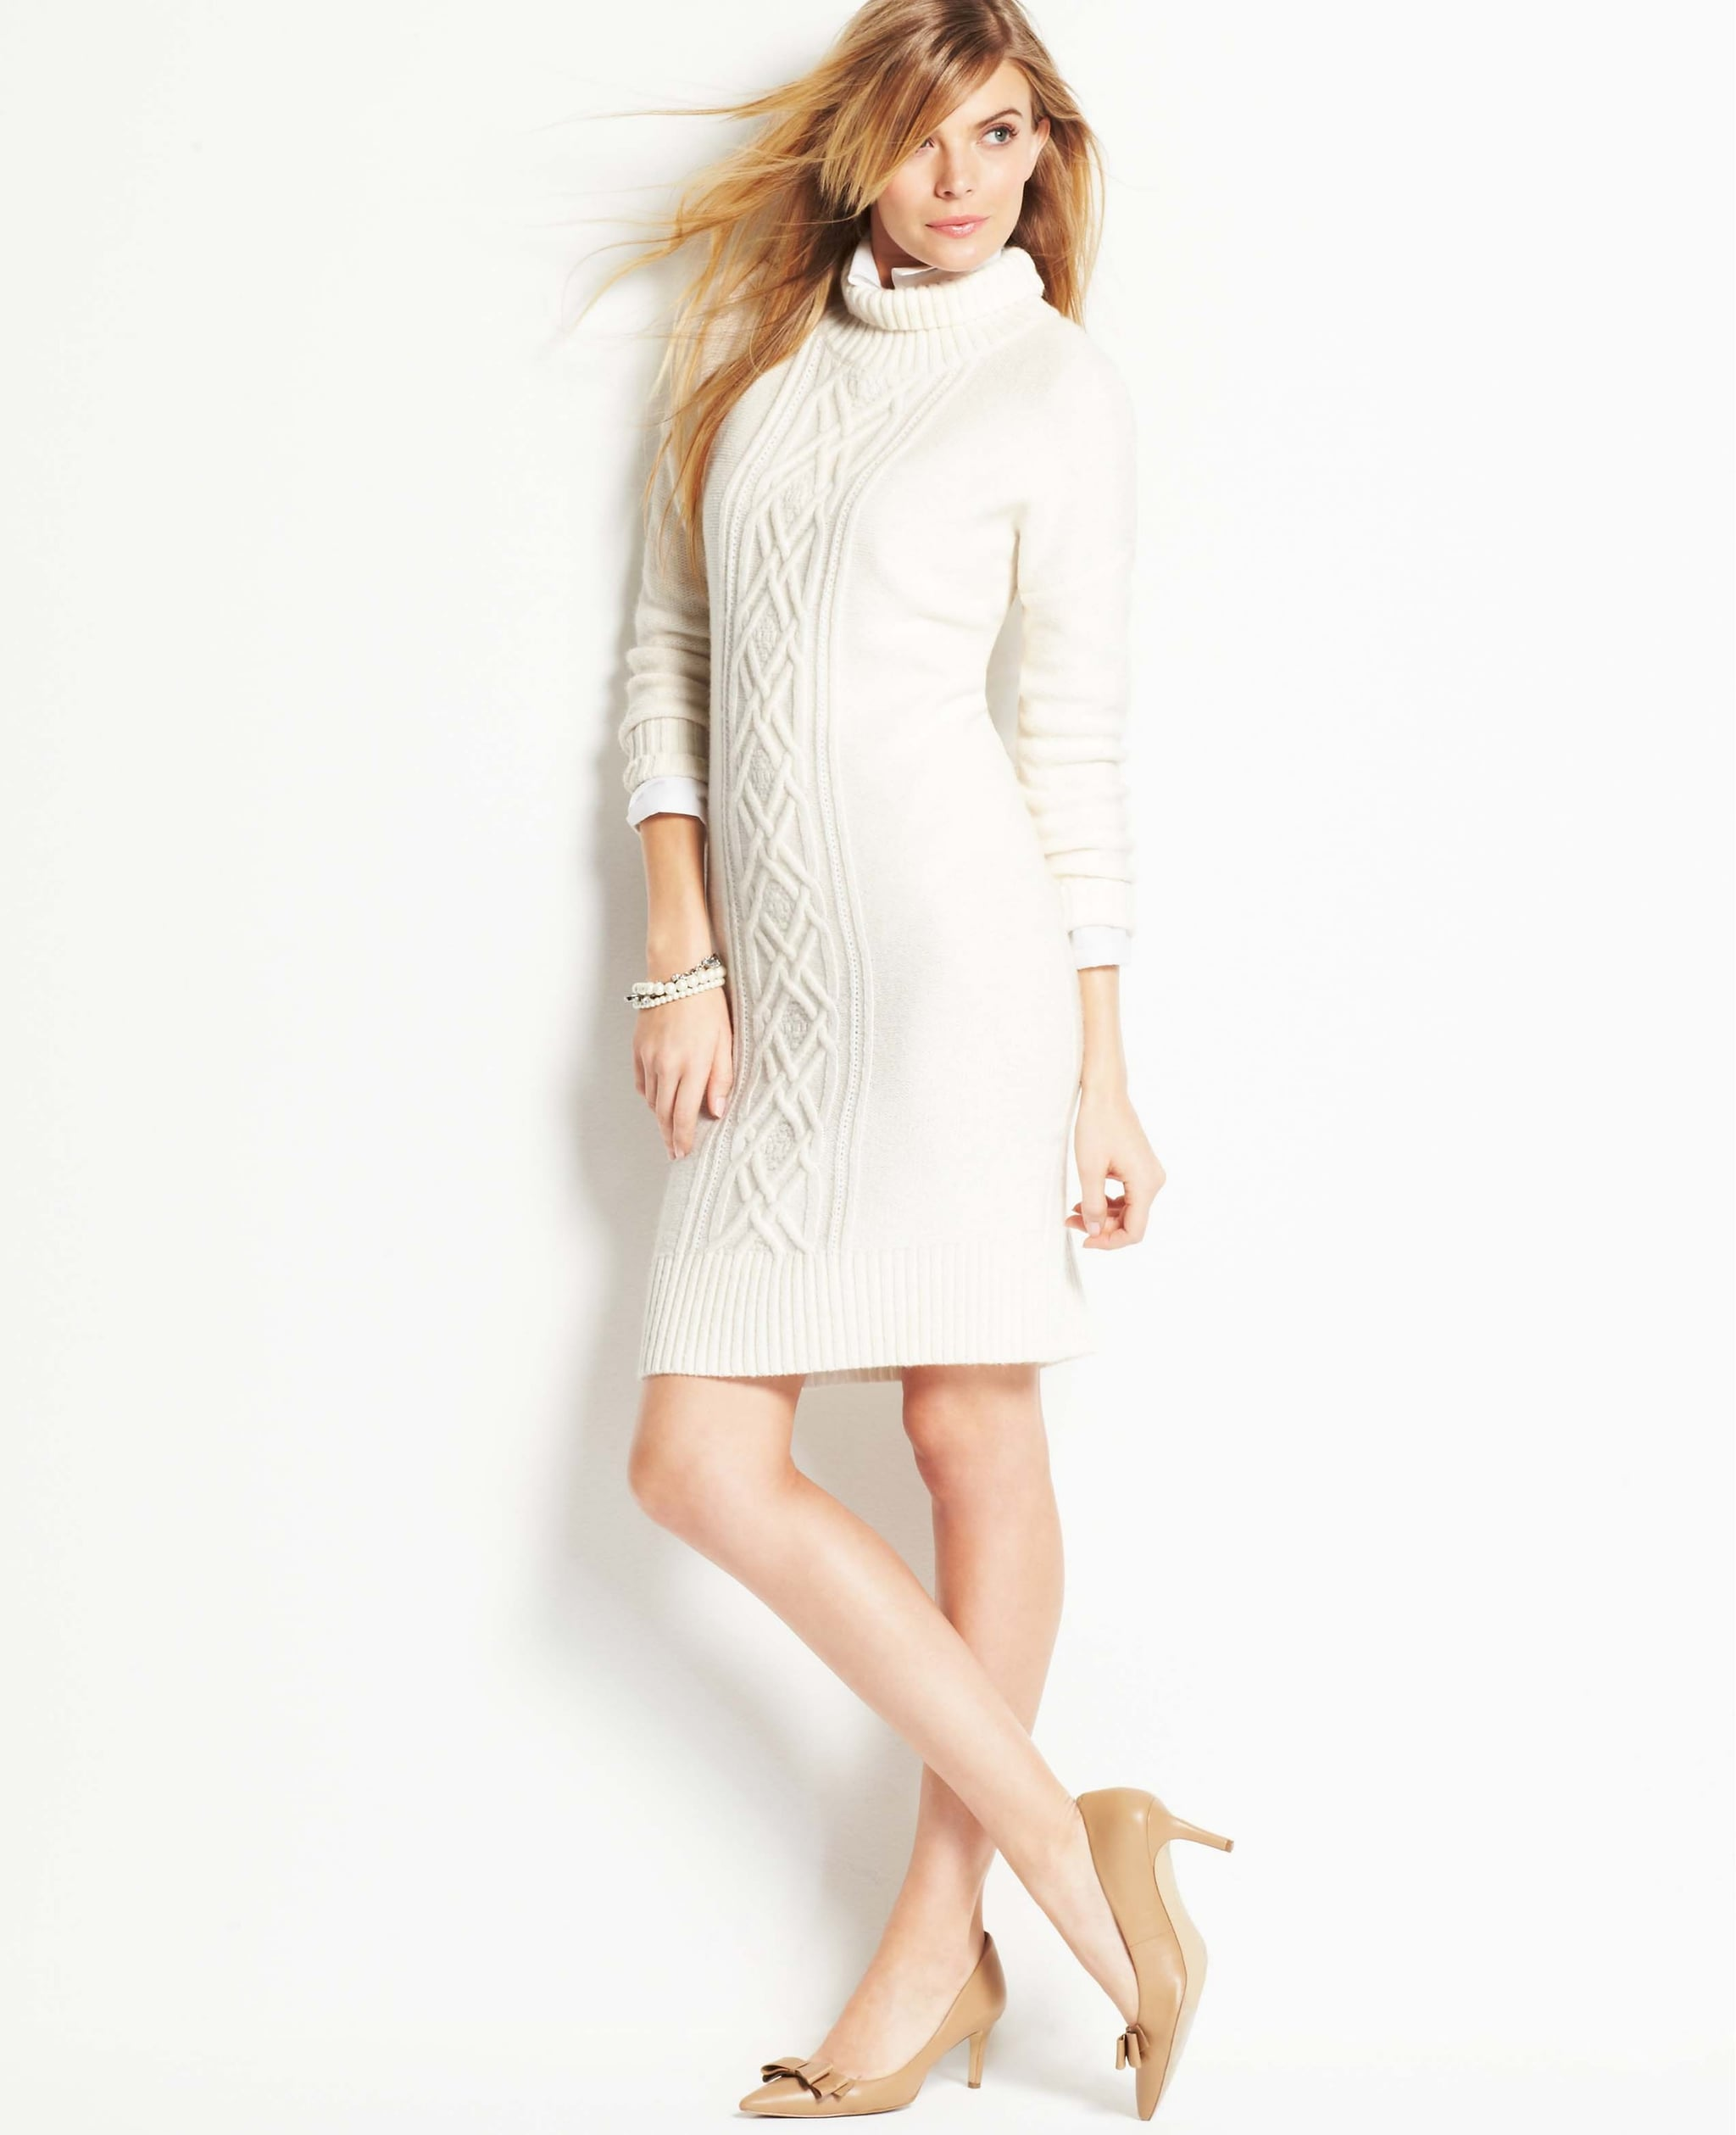 The next step for someone who loves an oversize, chunky sweater? A sweater dress with the same vibe. I'd wear this Ann Taylor style ($129) with over-the-knee boots and likely live in it. — LM